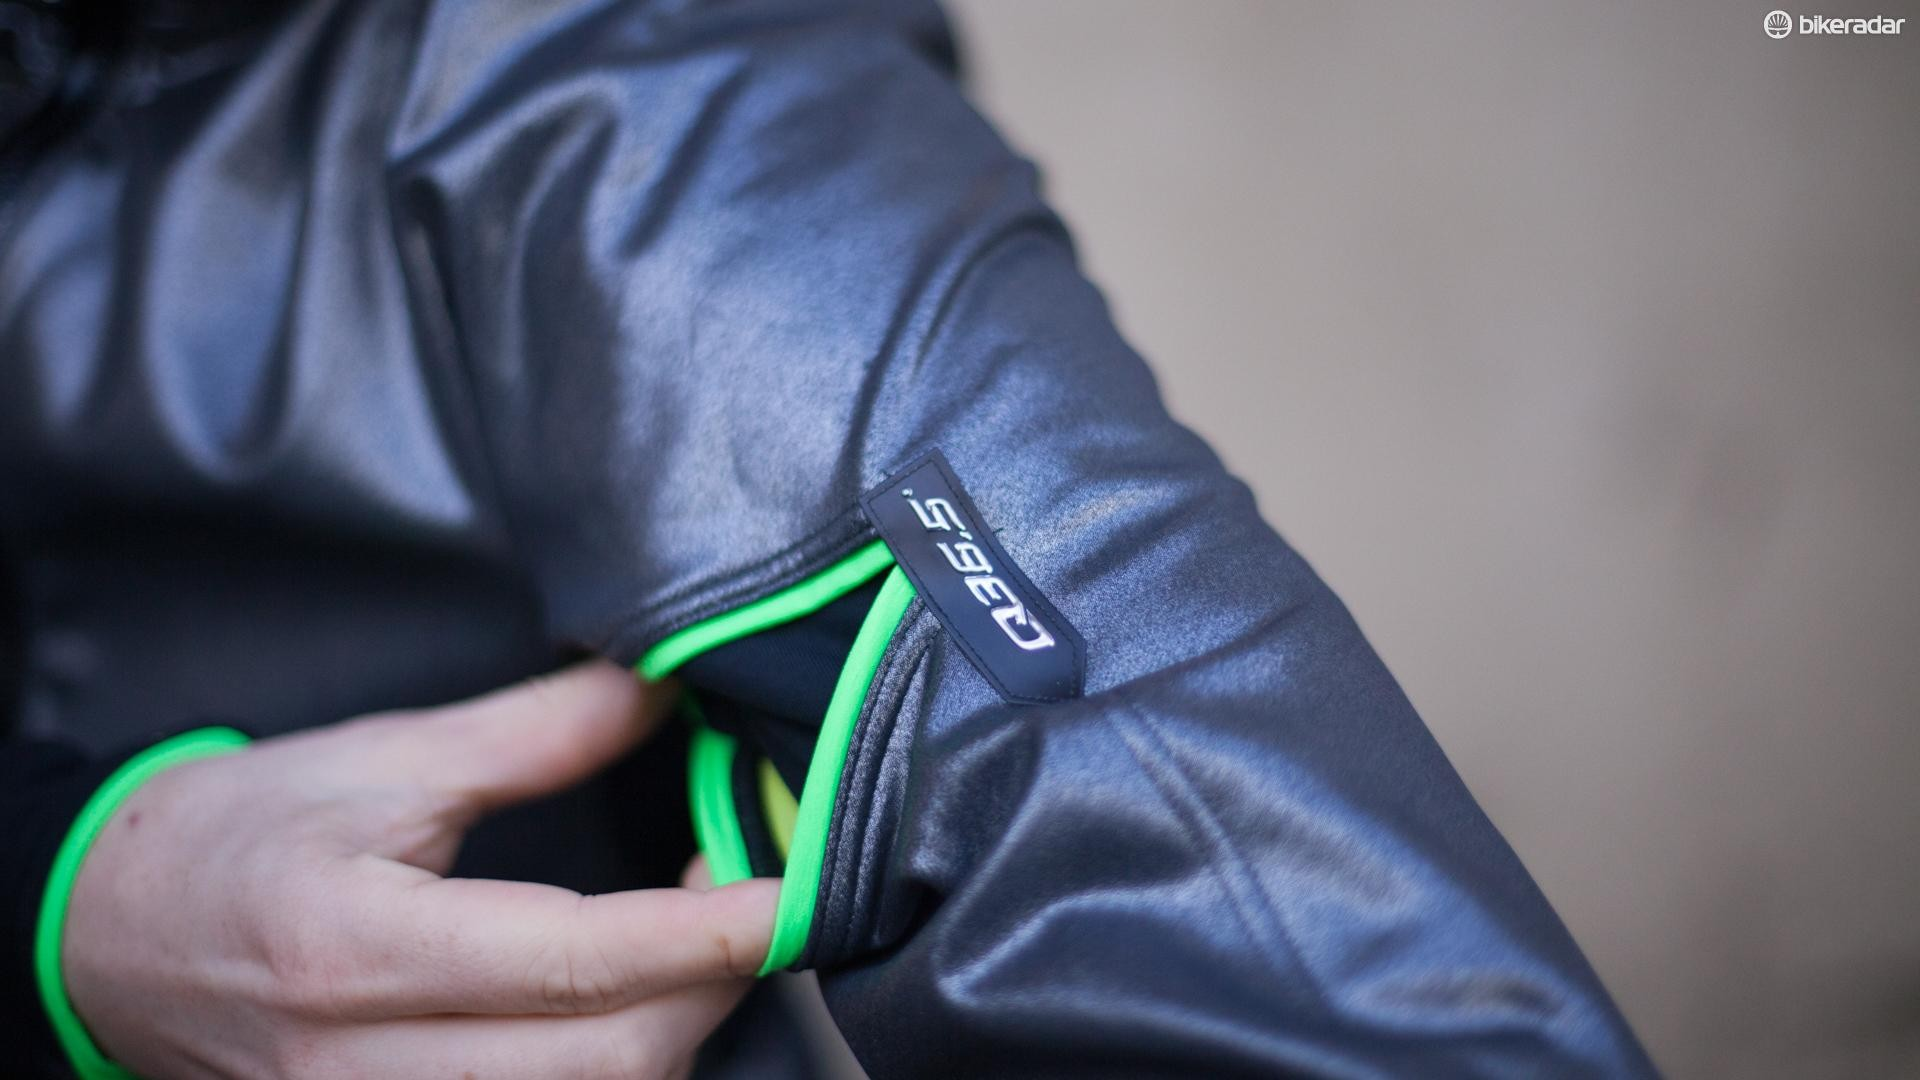 There's a useful pocket on the upper left arm which can store a few energy gels